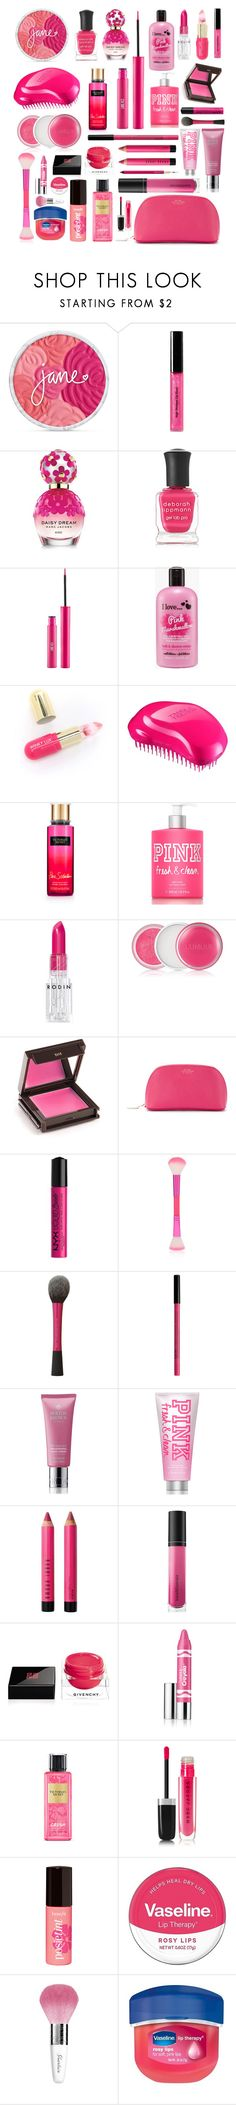 """Pink Random Makup"" by queencourtney16 ❤ liked on Polyvore featuring beauty, Bobbi Brown Cosmetics, Marc Jacobs, Deborah Lippmann, Sigma, Winky Lux, Forever 21, Victoria's Secret, Rodin and Clinique"